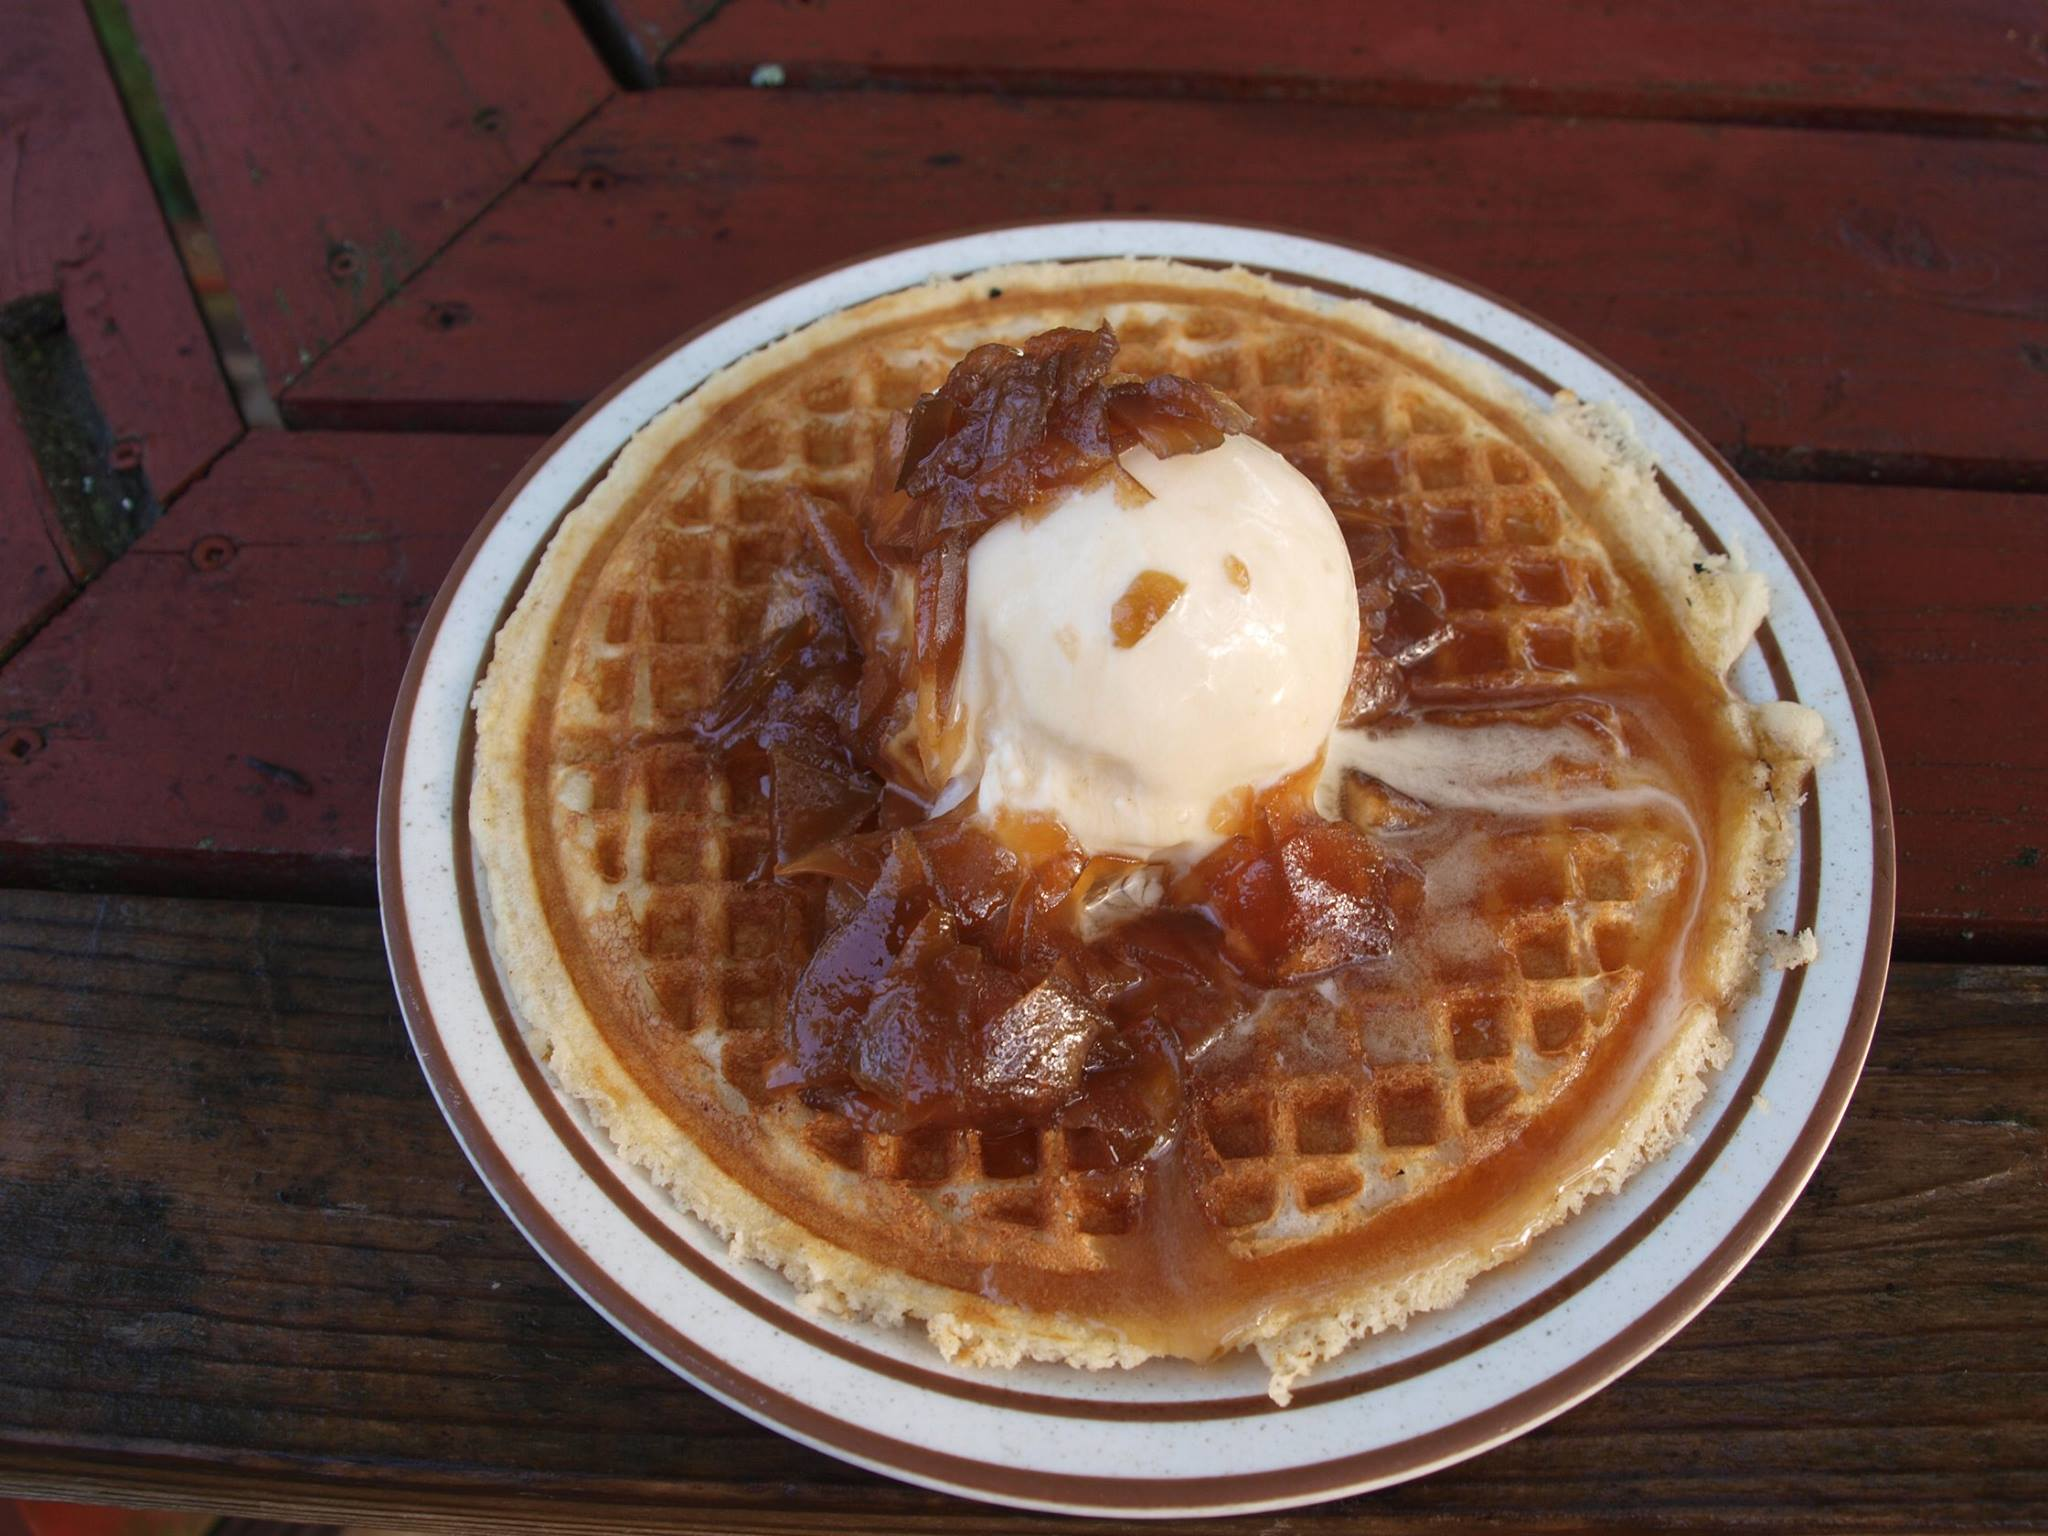 Polly's waffle is topped with their incomparable apple-and-maple Hurricane Sauce.